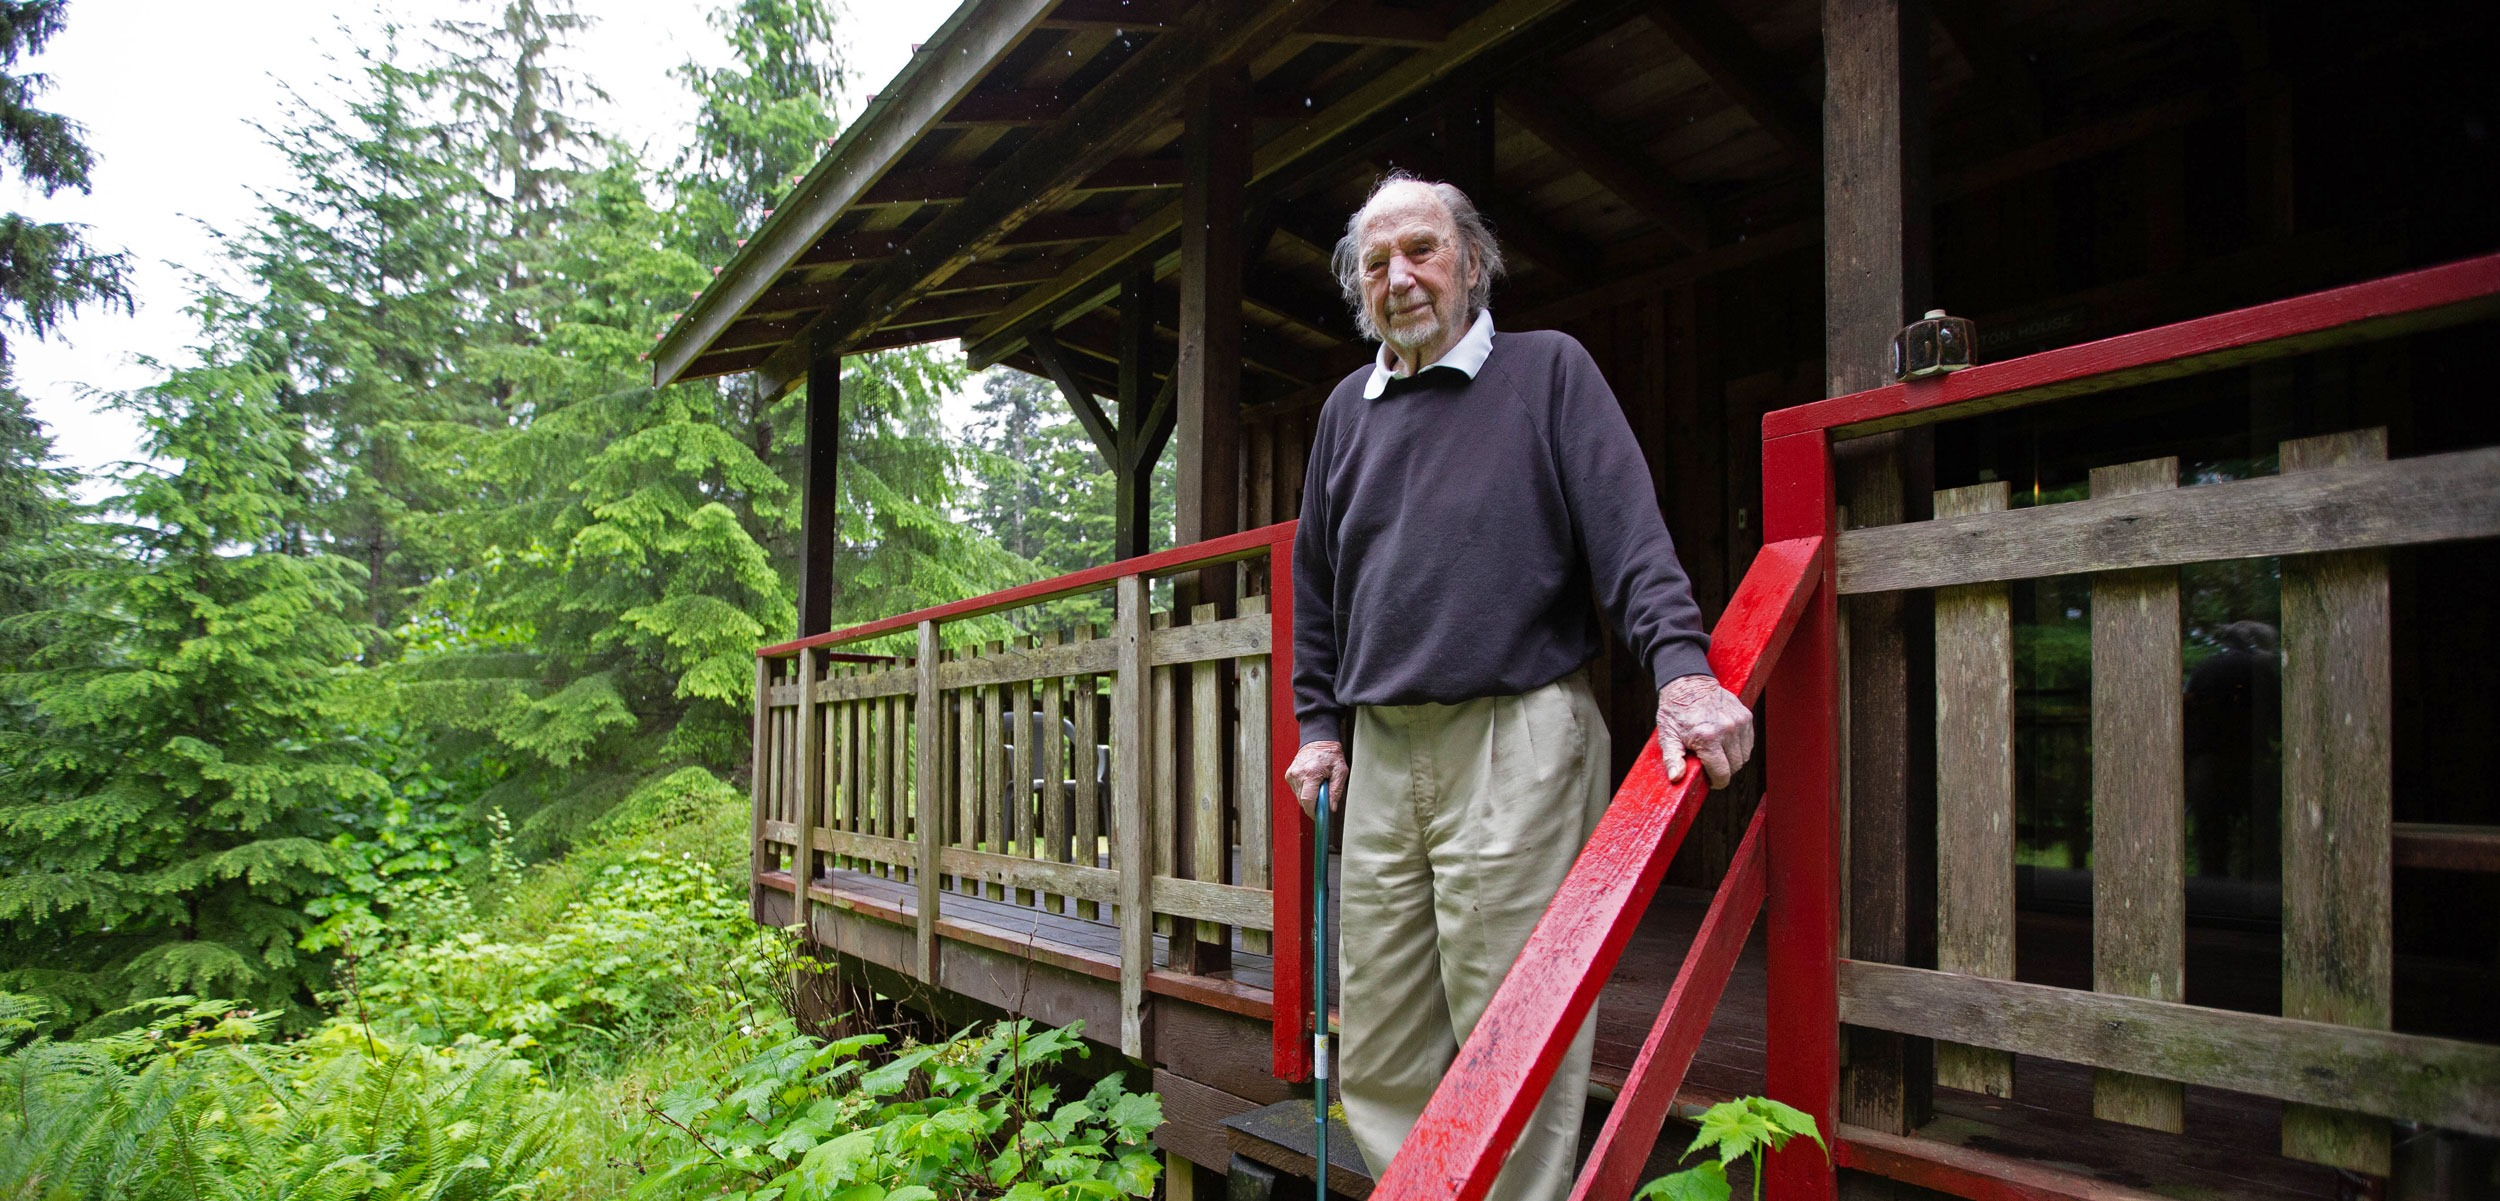 charles brandt at his hermitage in 2018 - photo by grant callegari